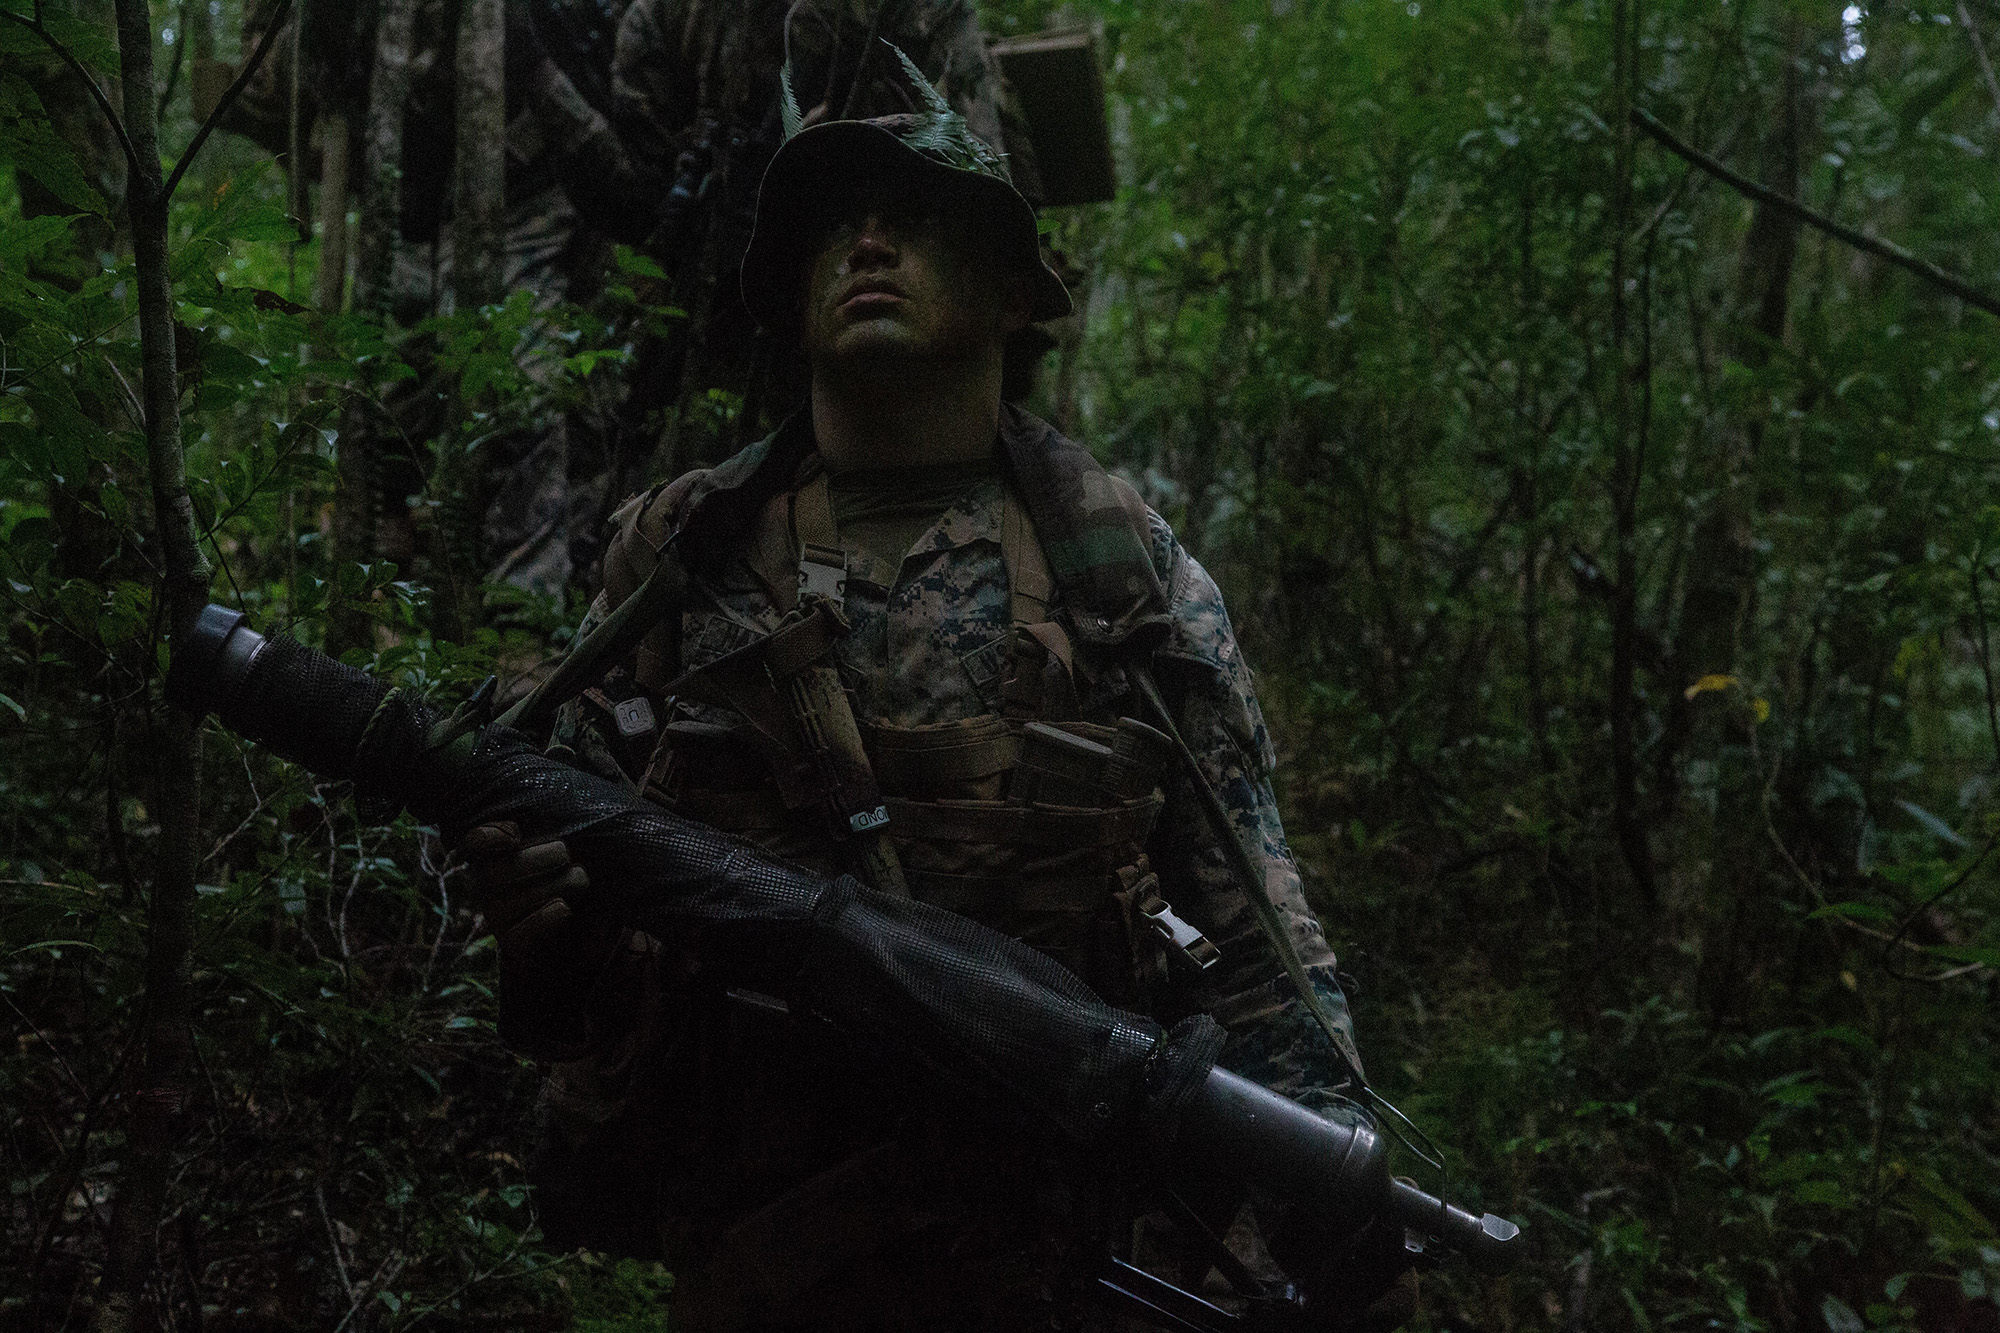 A U.S. Marine patrols during a force-on-force exercise at Camp Gonsalves, Okinawa, Japan on Oct. 16, 2020. (Lance Cpl. Kolby Leger/Marine Corps)